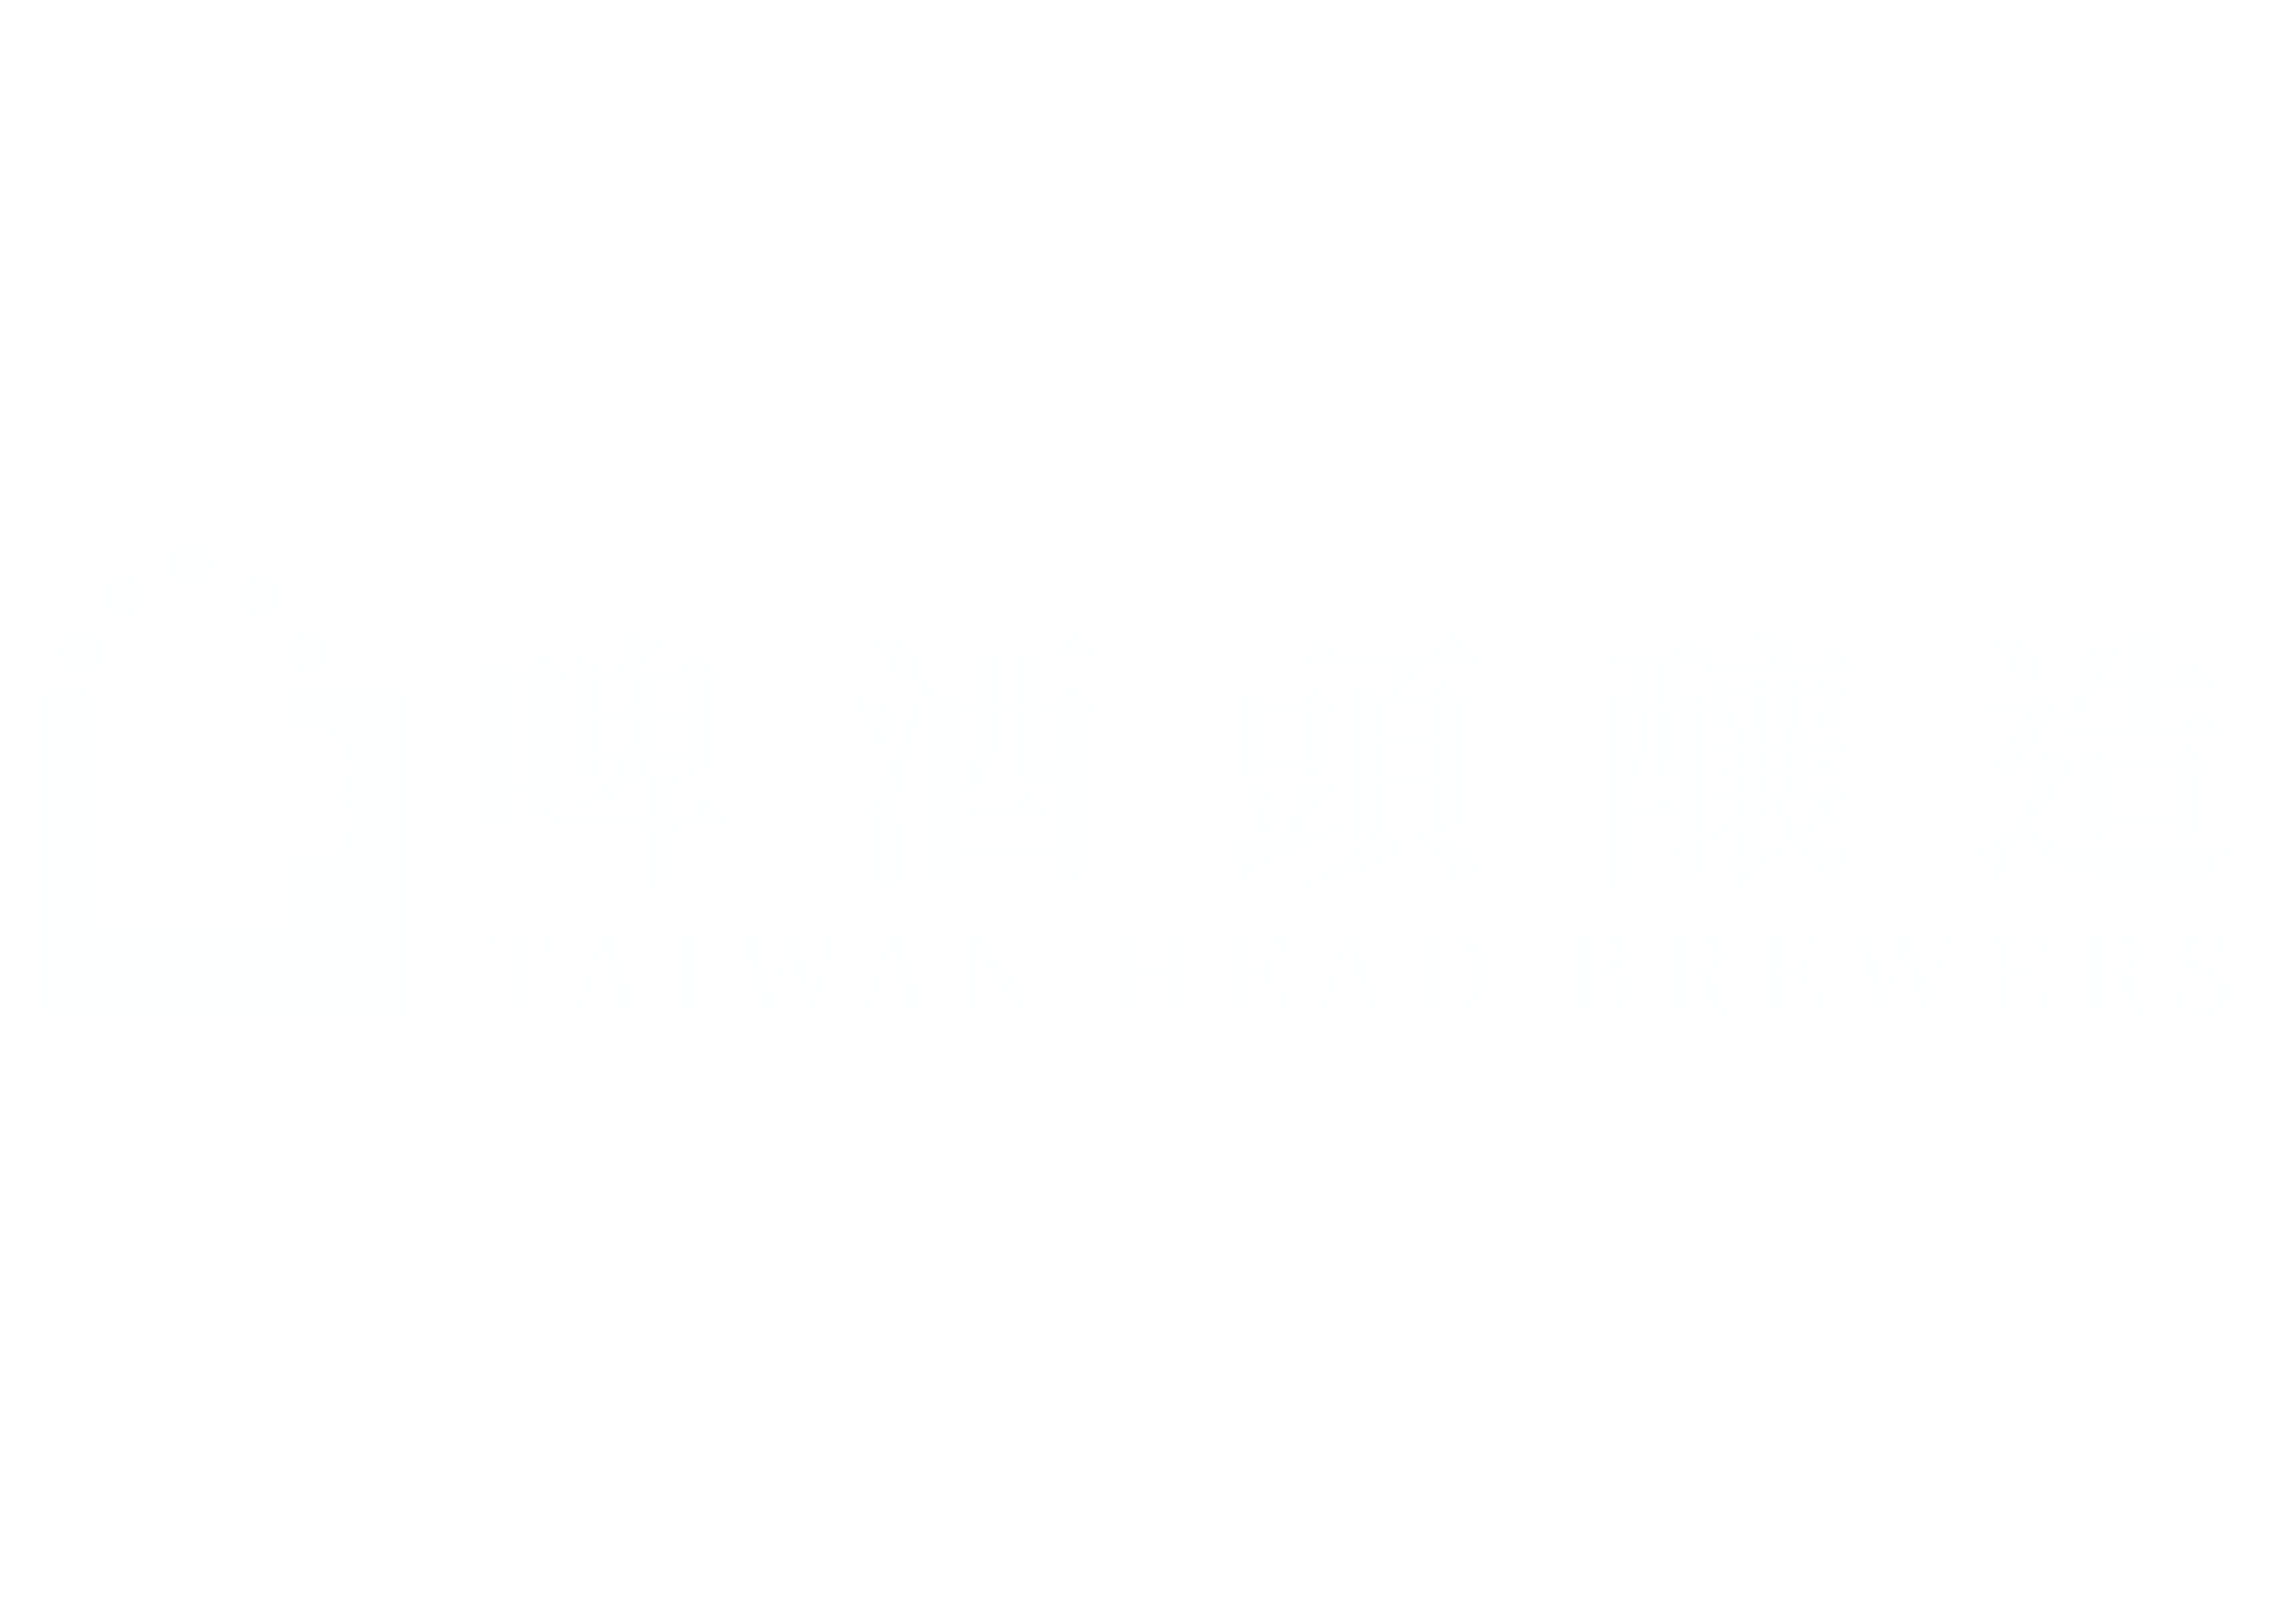 Taiwan Head Brewers Brewing Company